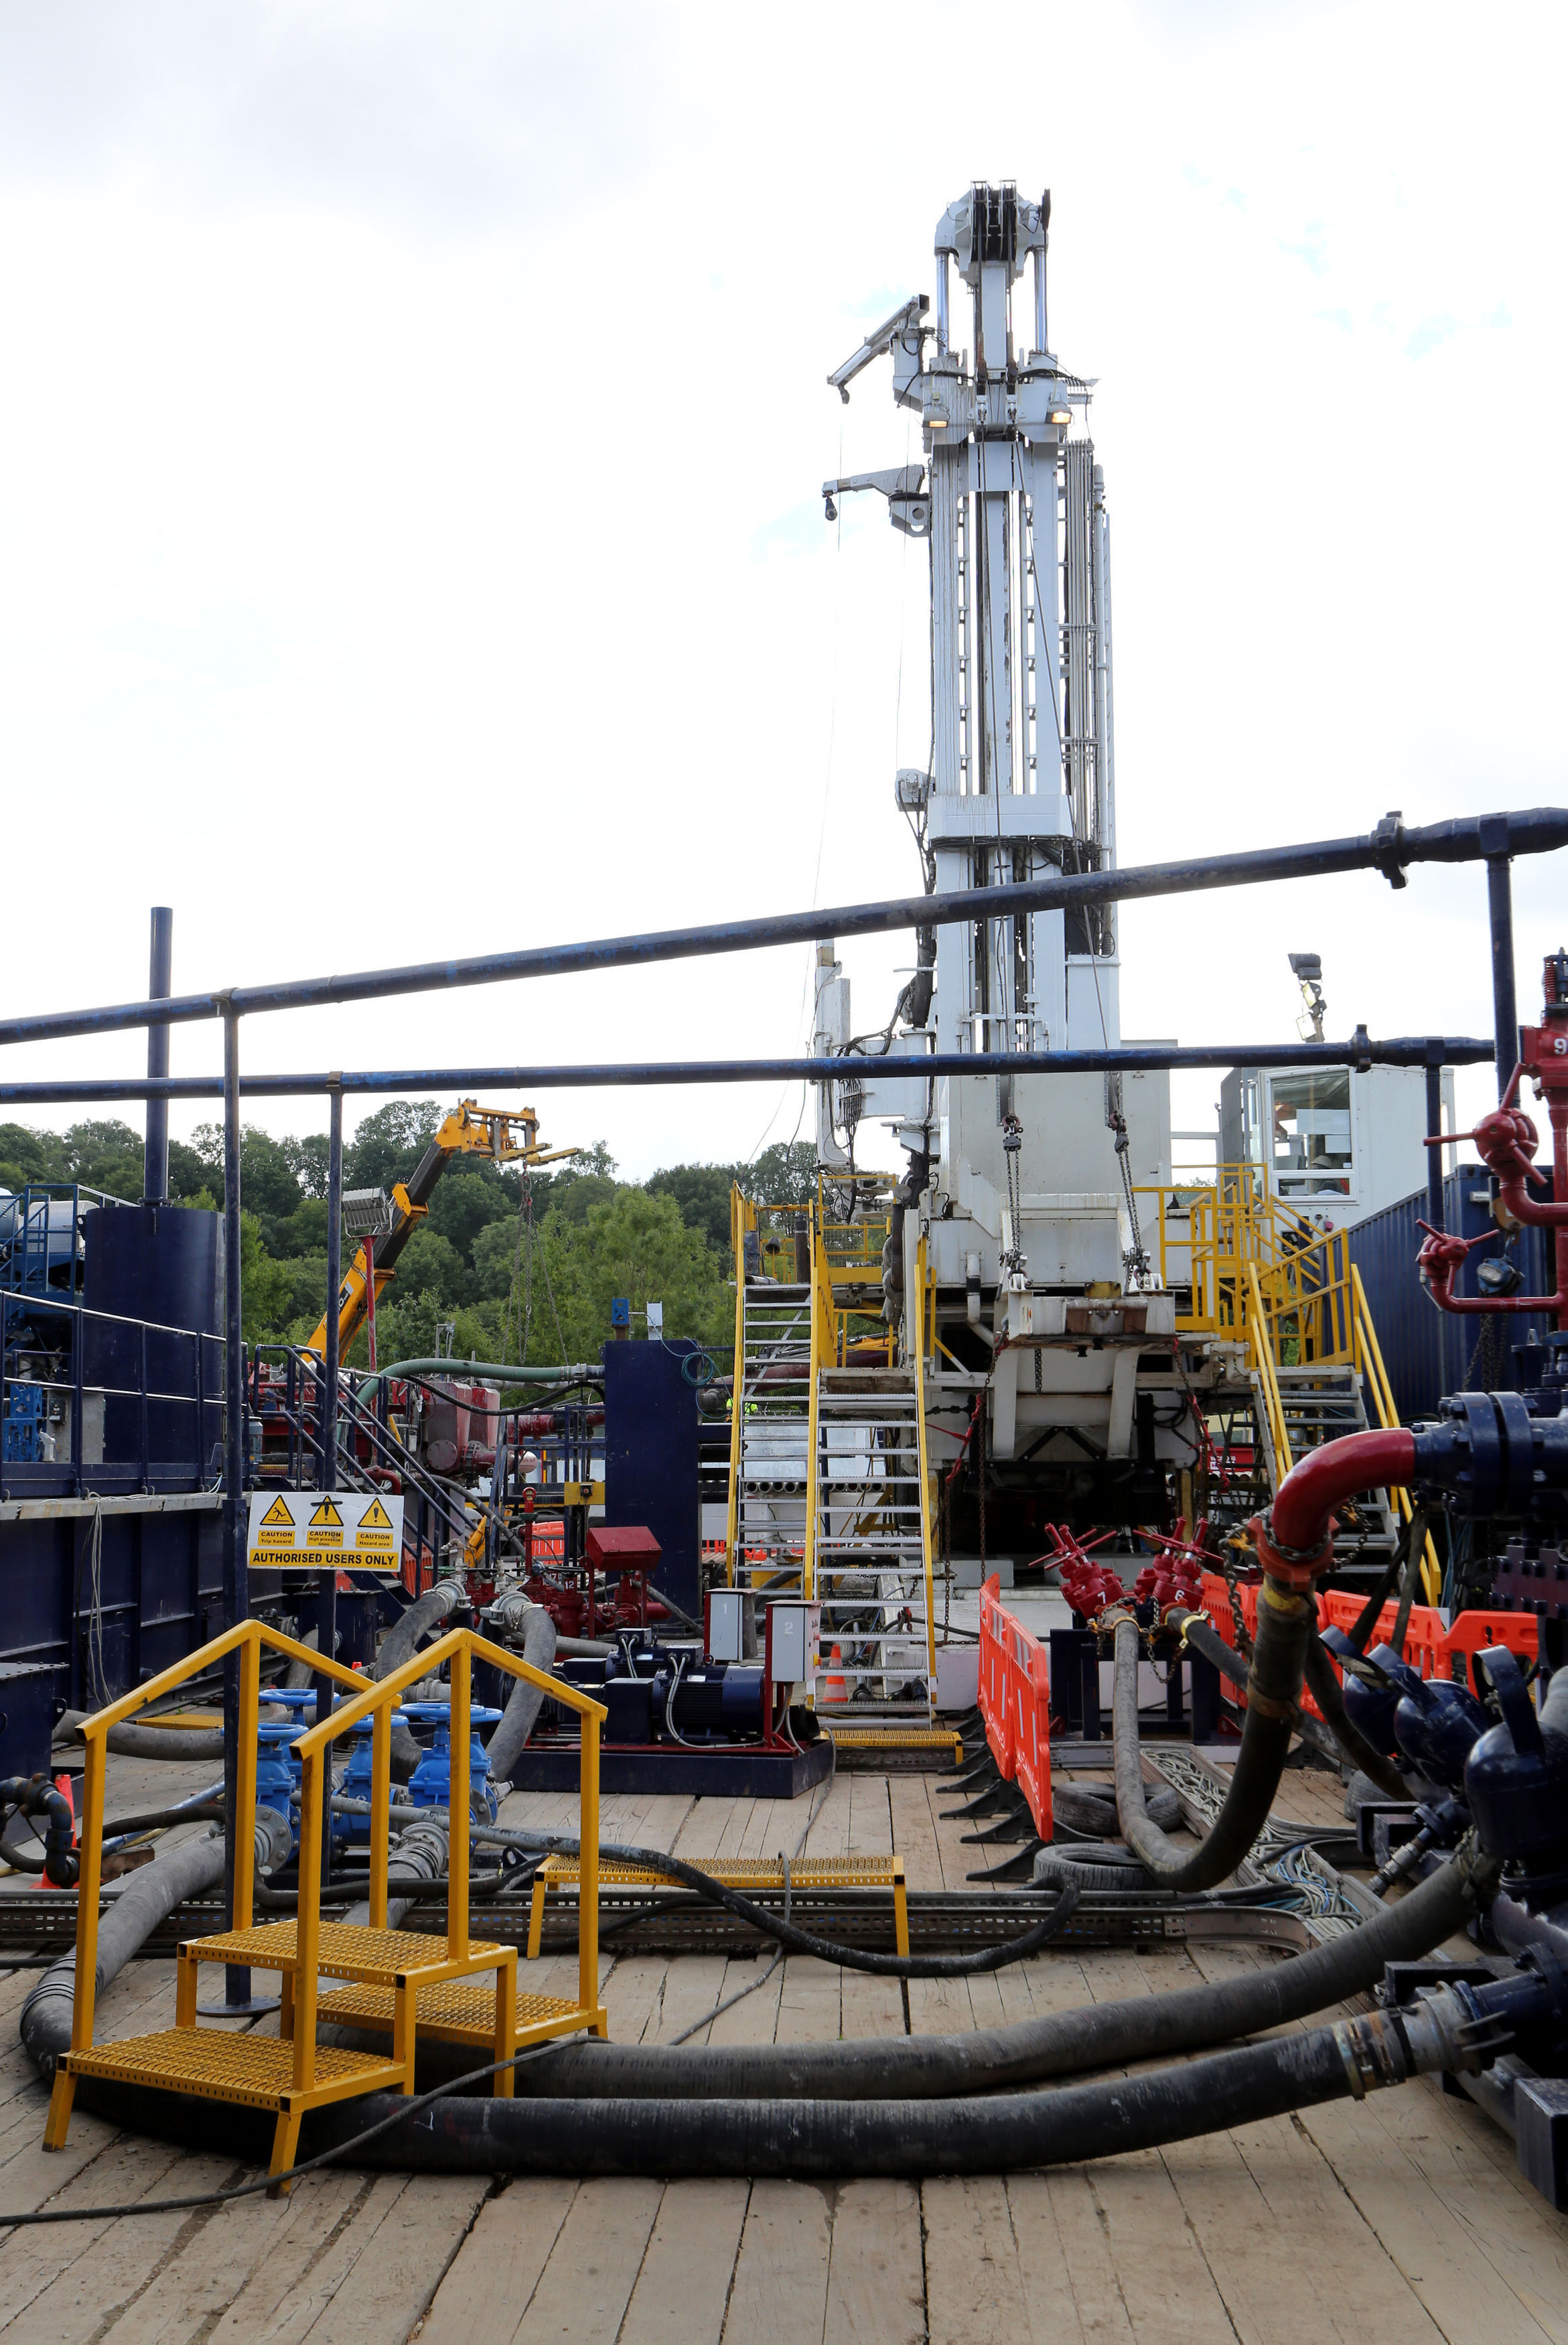 File photo dated 16/08/13 of a fracking exploration drilling site, as individual households will be given cash payments potentially running into thousands of pounds in recompense for fracking in their area, under new plans announced by Theresa May. PRESS